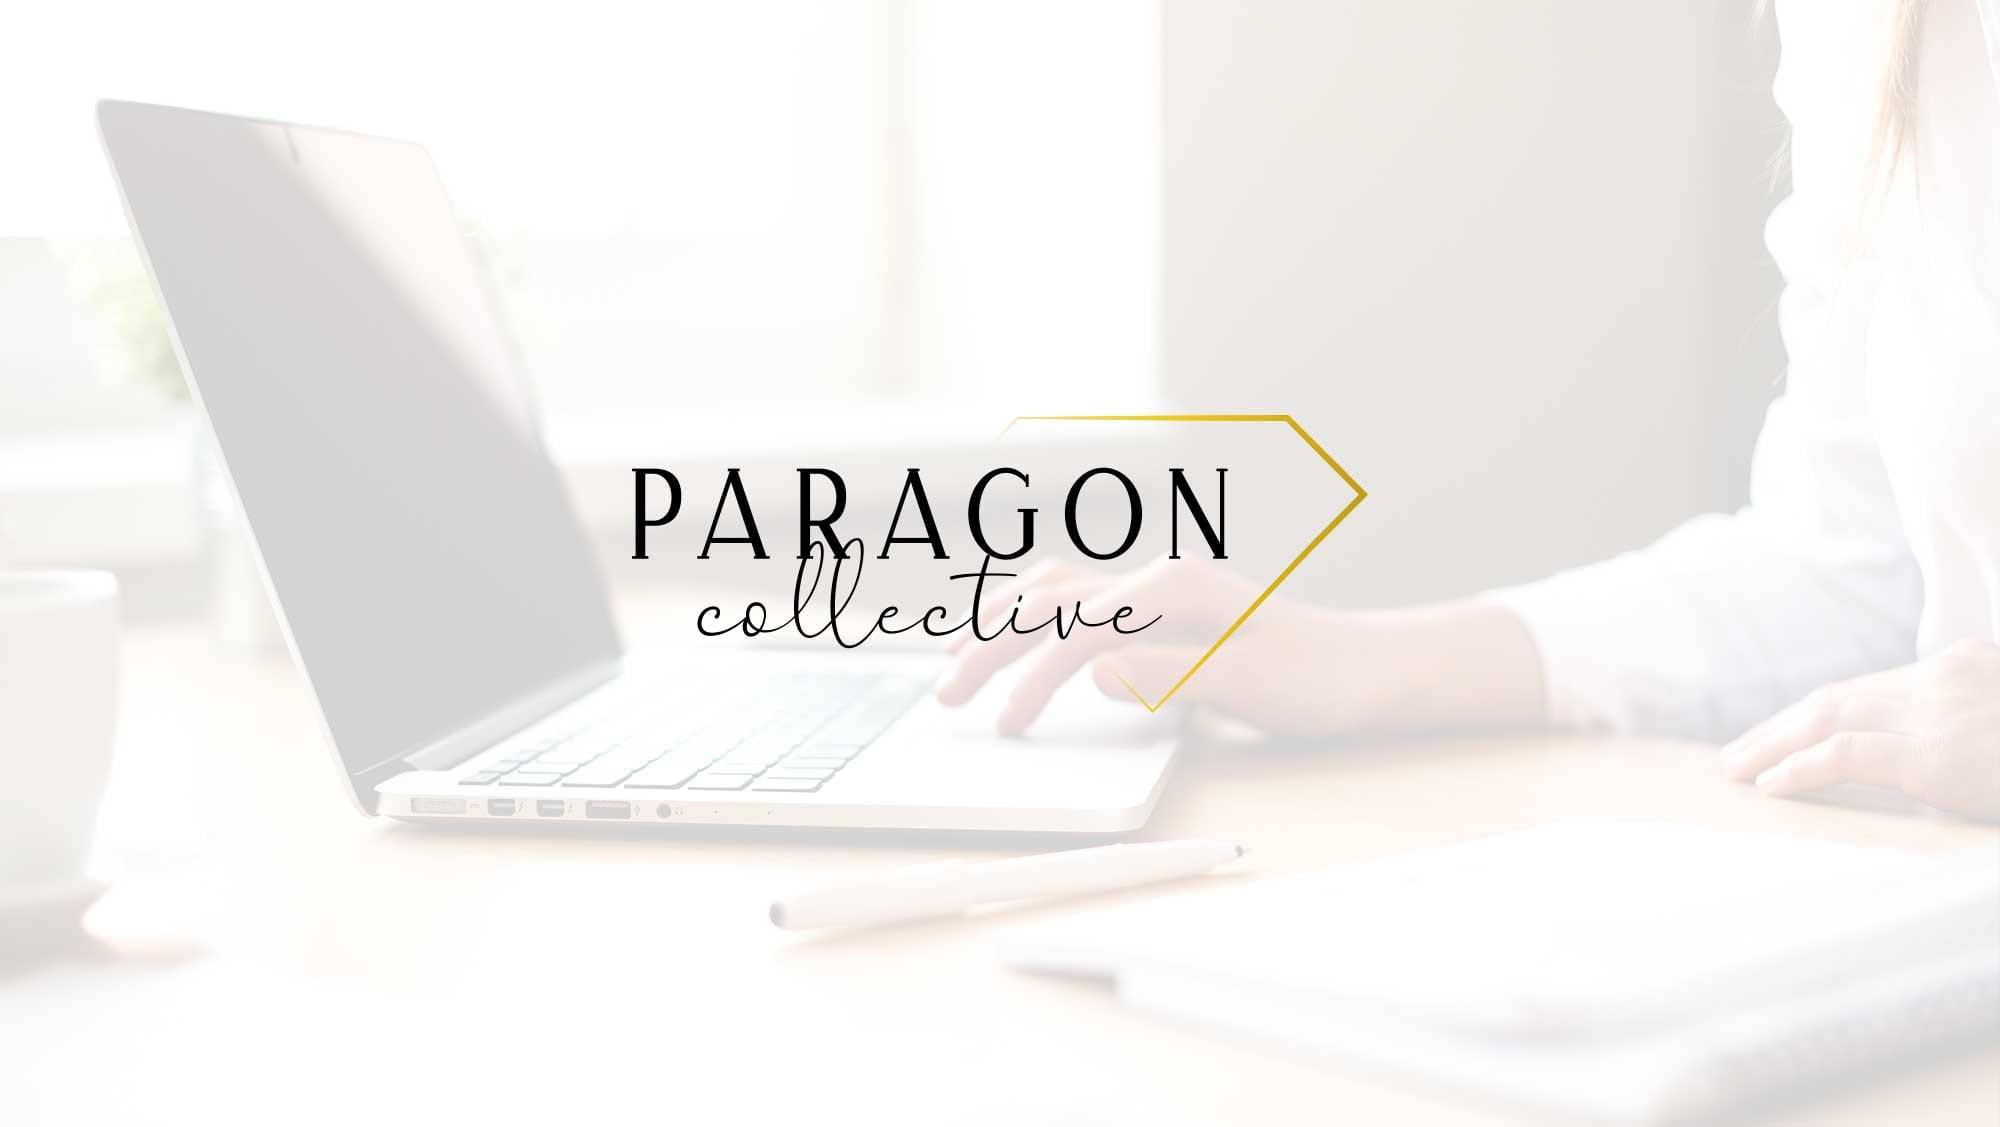 Paragon Collective